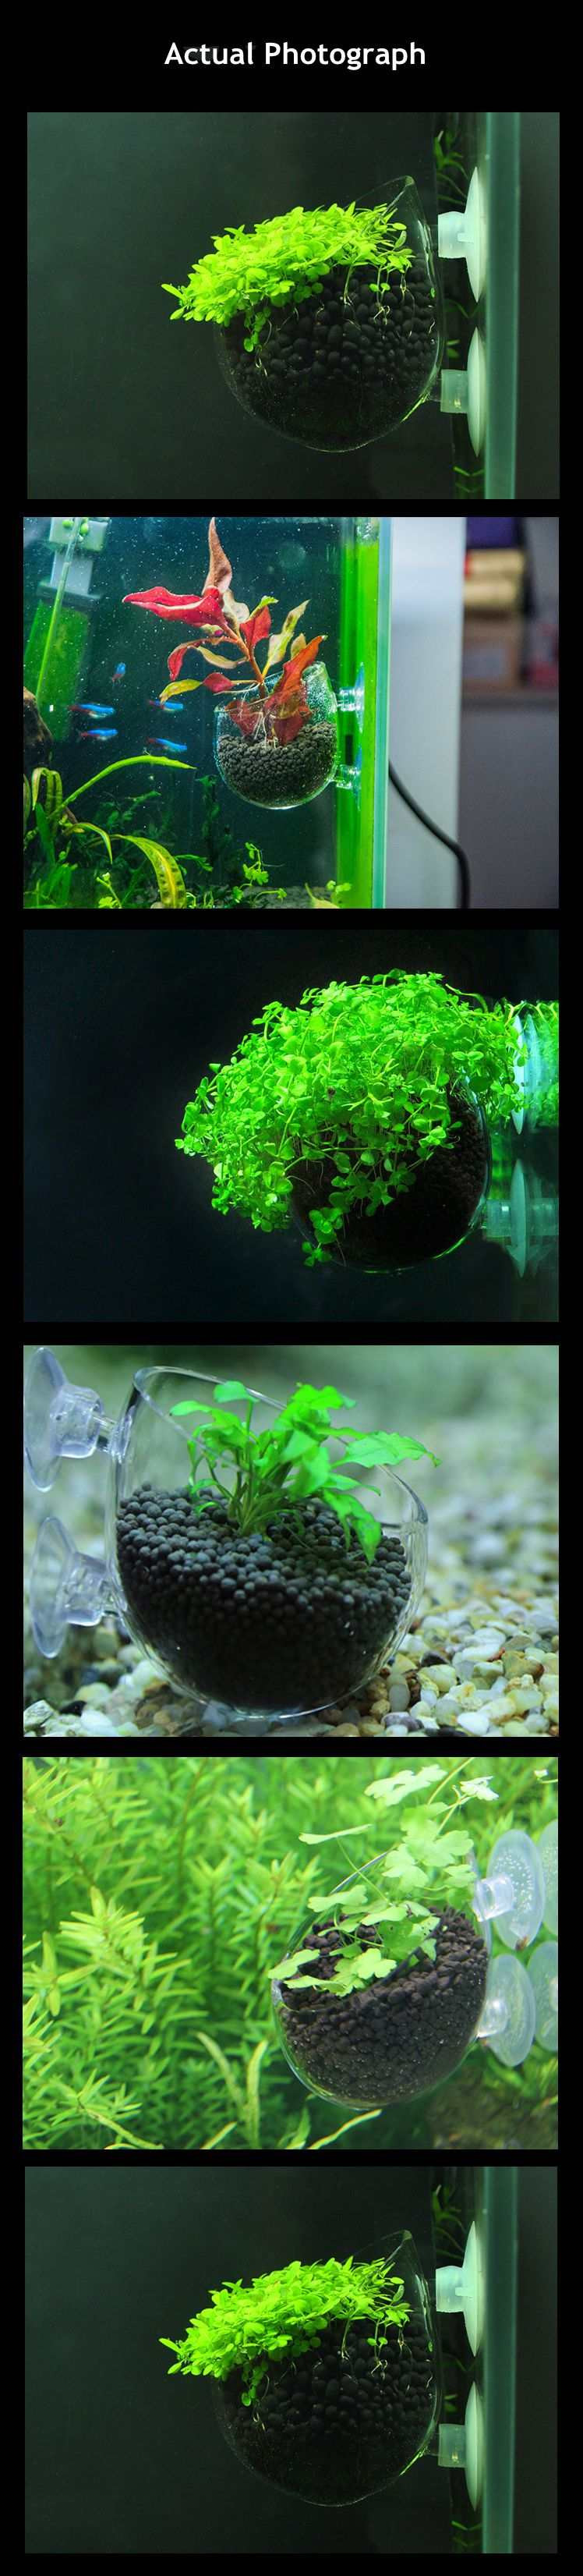 plants for bettas in a vase of aqua plant glass nursery cup water grass aquarium plants pots fish inside mei will reply to you asapthank you we promise if you are on our products our services are not satisfied please contact us and we will provide you